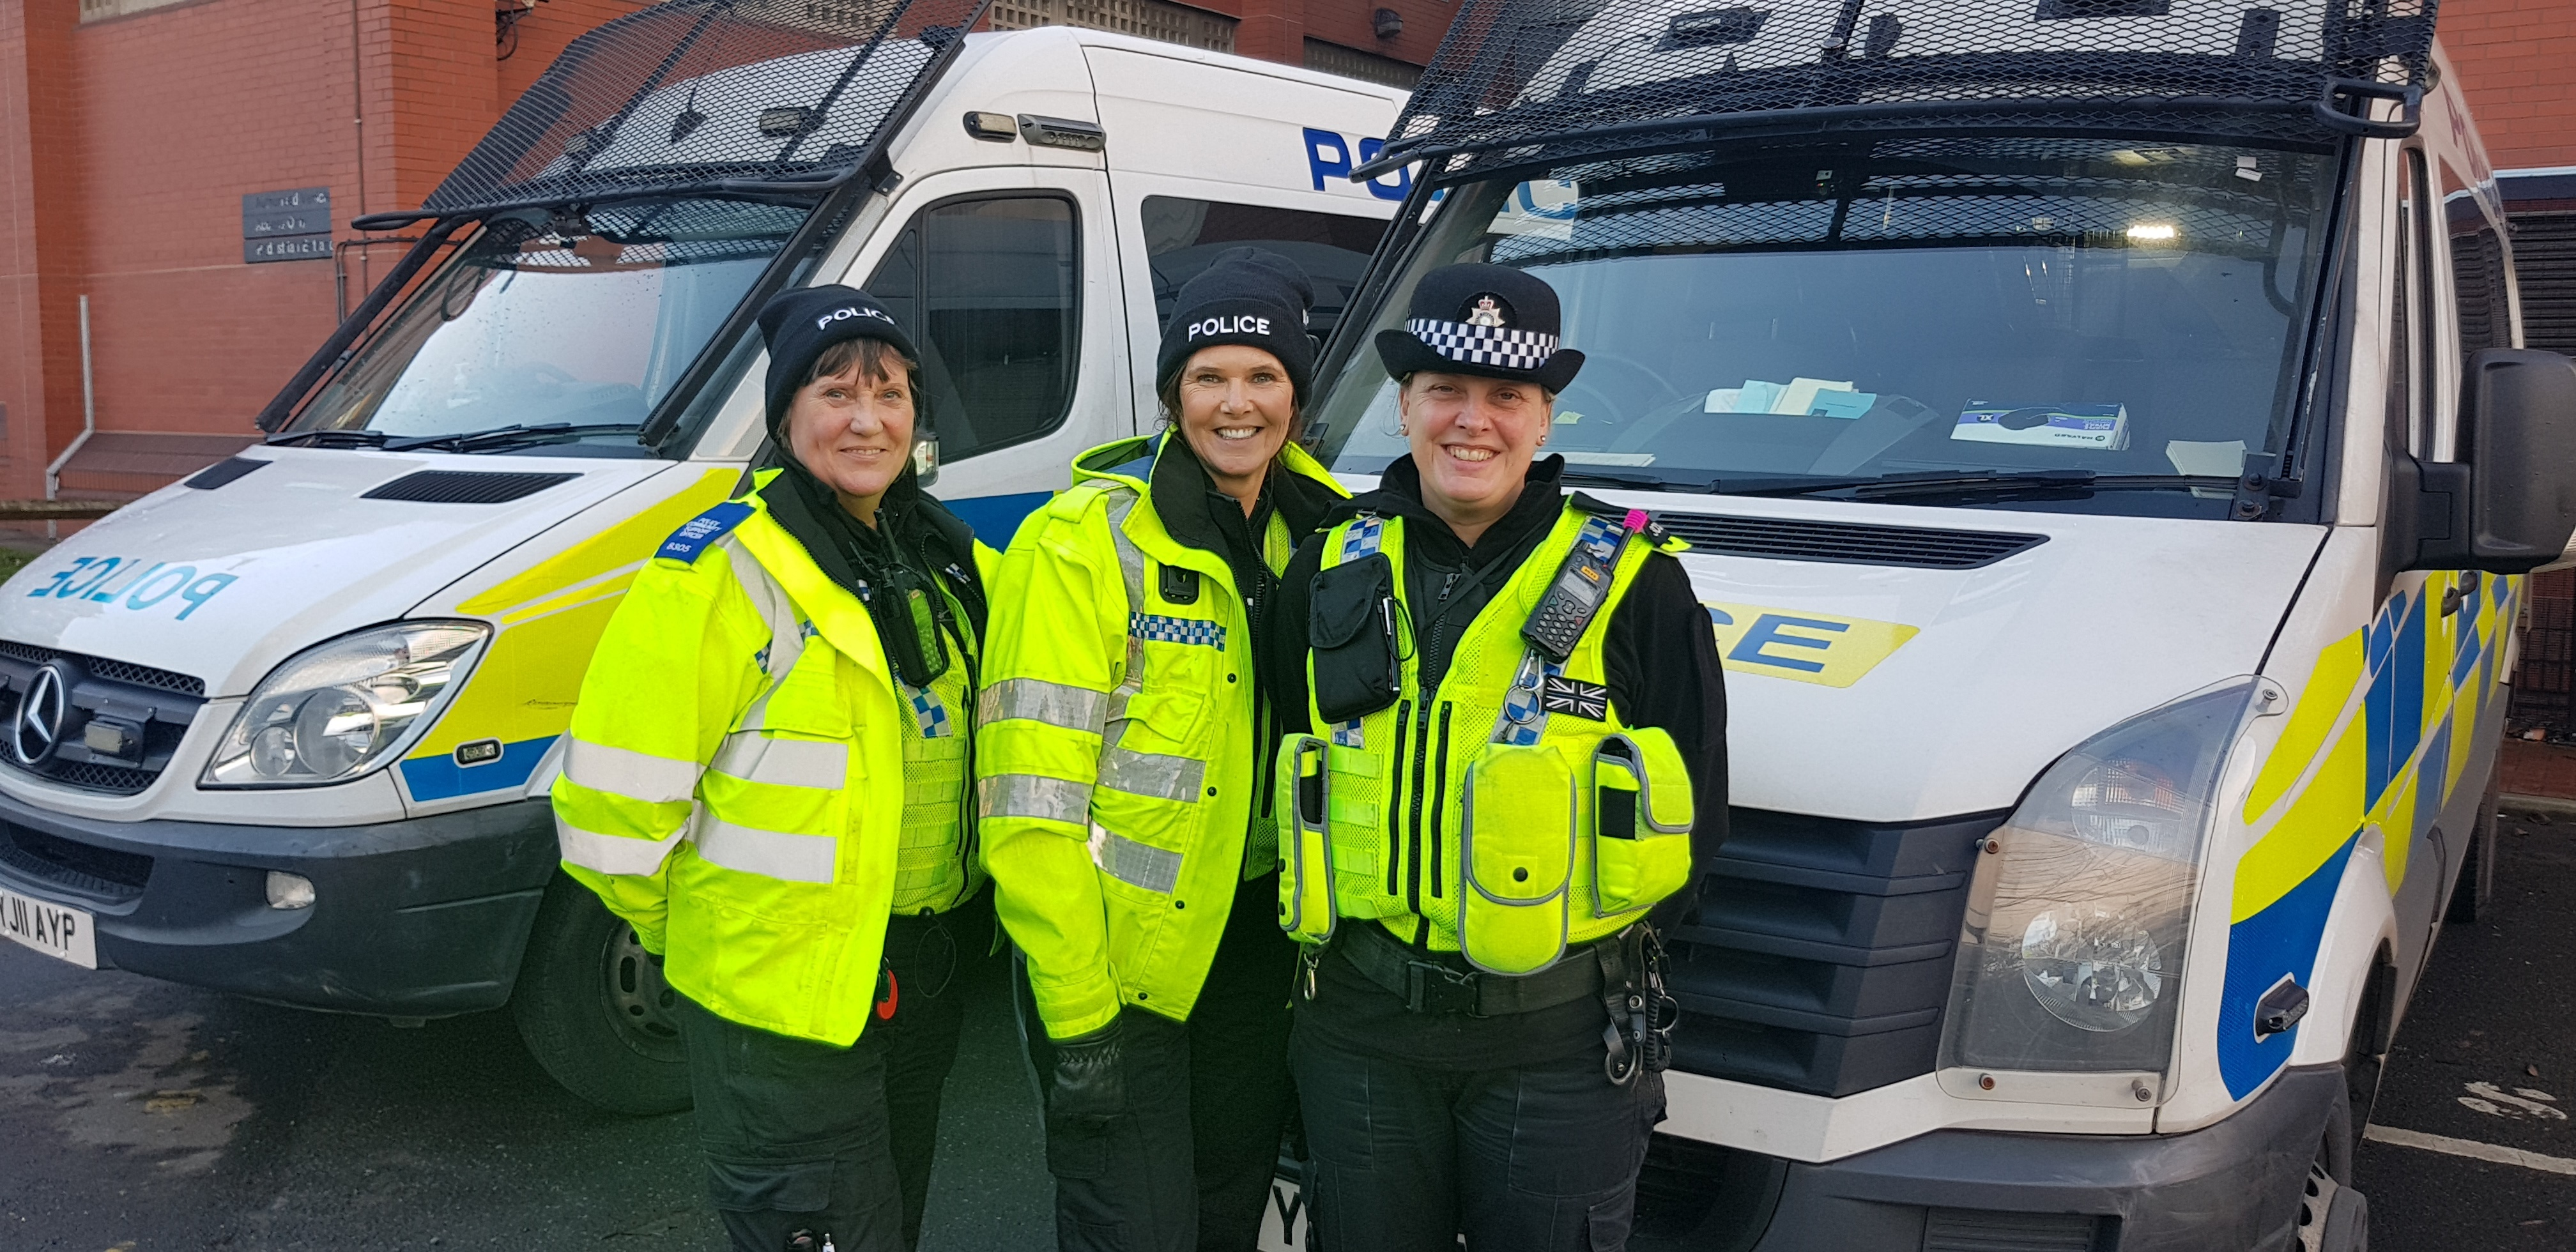 Left to right- PCSO Julie, Debbie and PC Claire Atkinson who led the day